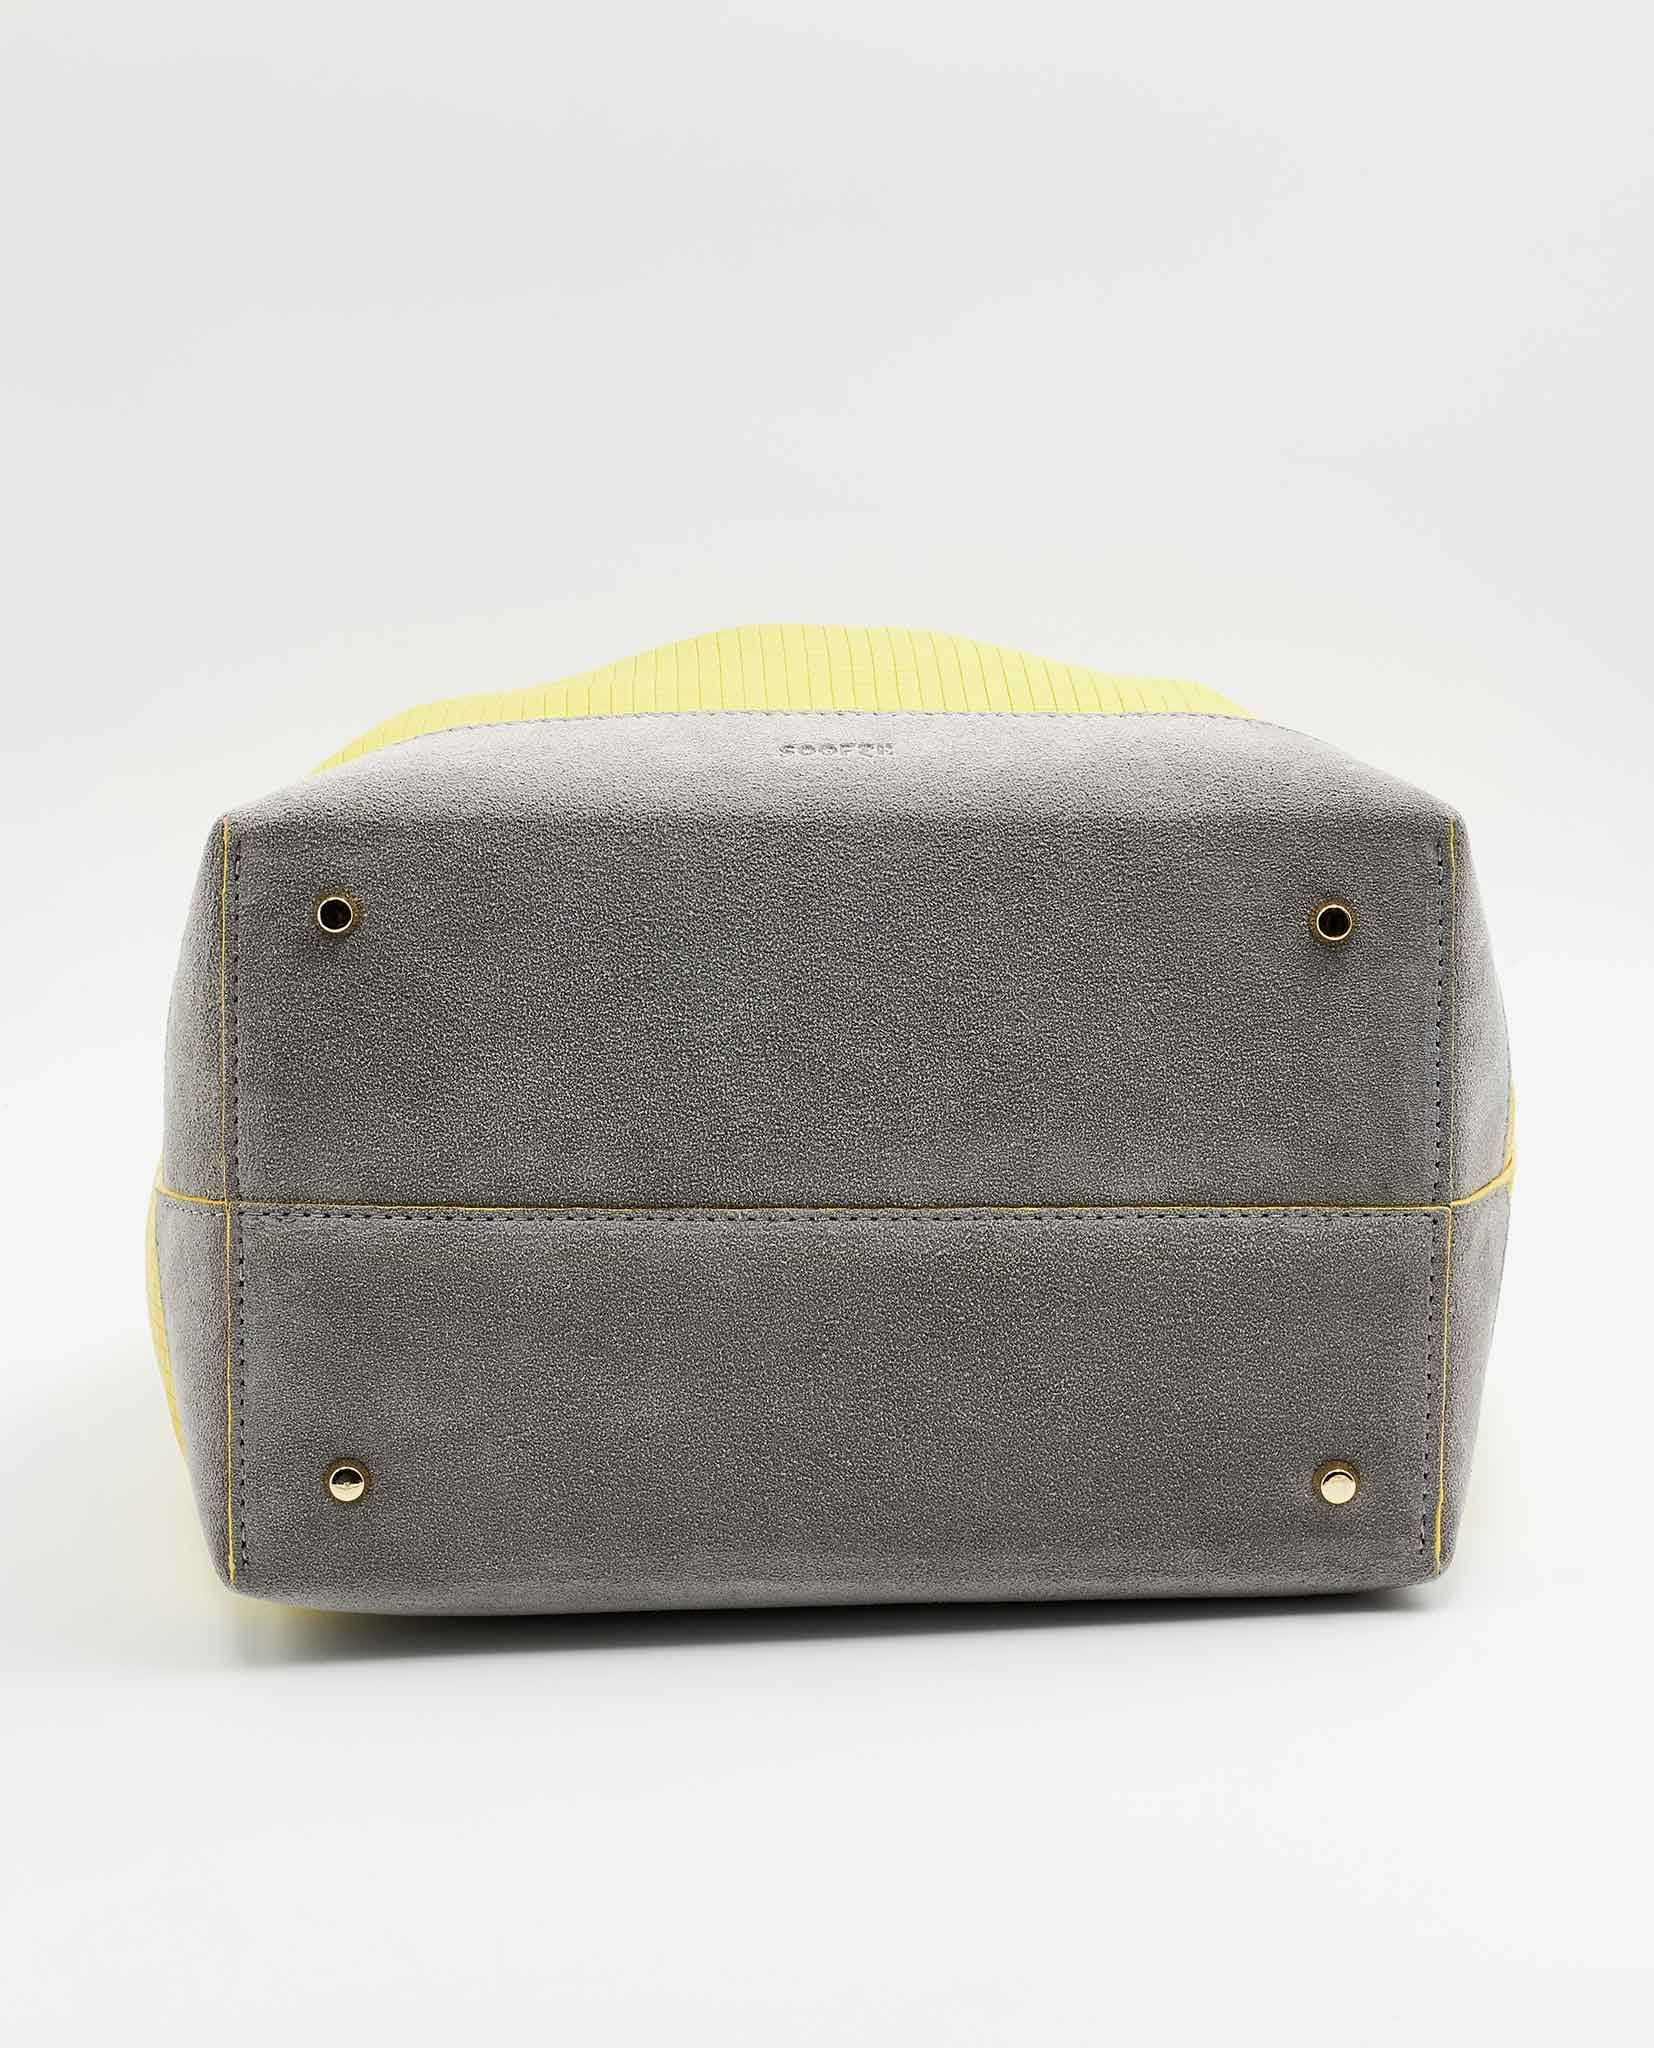 SOOFRE-Berlin-unique-Bucket-Bag-squared-yellow-dove-grey-BOTTOM